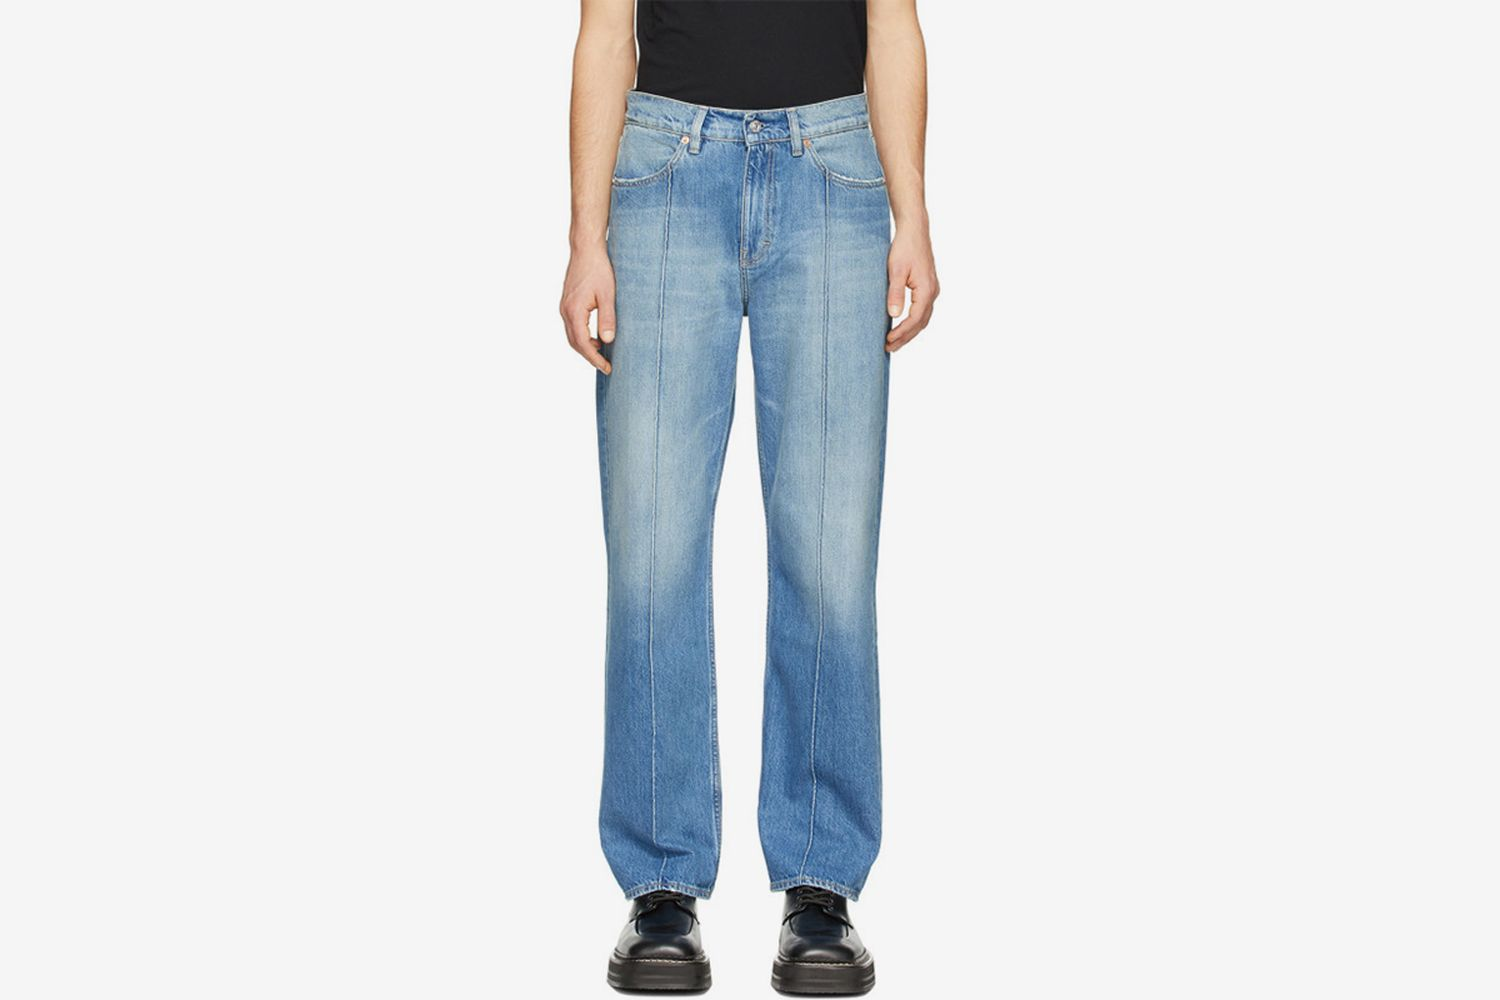 Blue Formal Cut Jeans